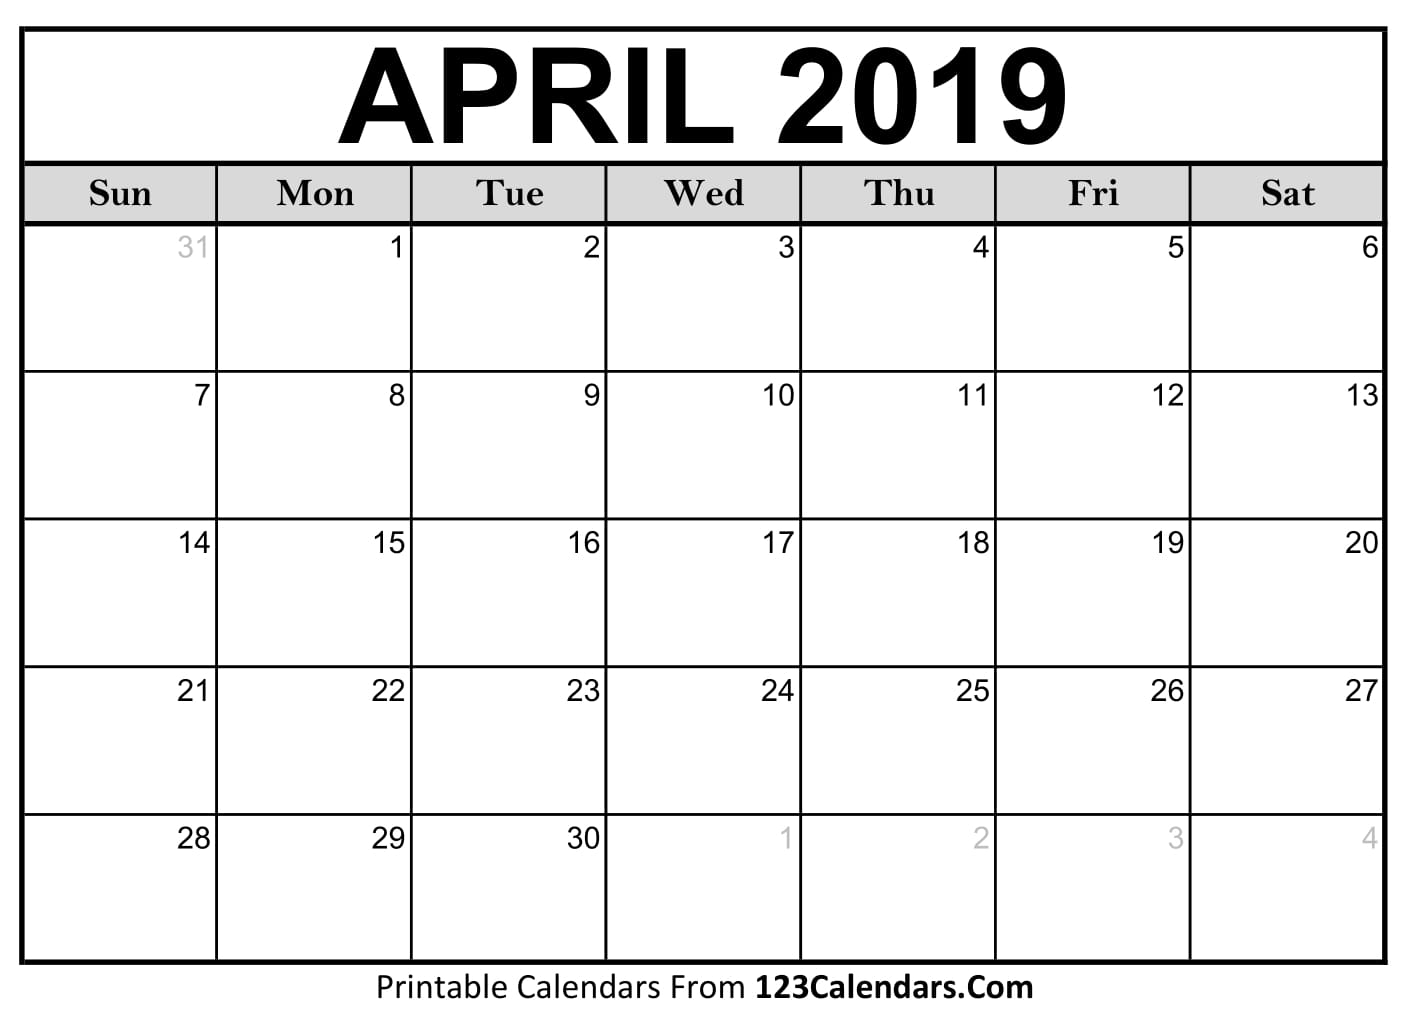 Calendar Planner April : Free april calendar printable template source